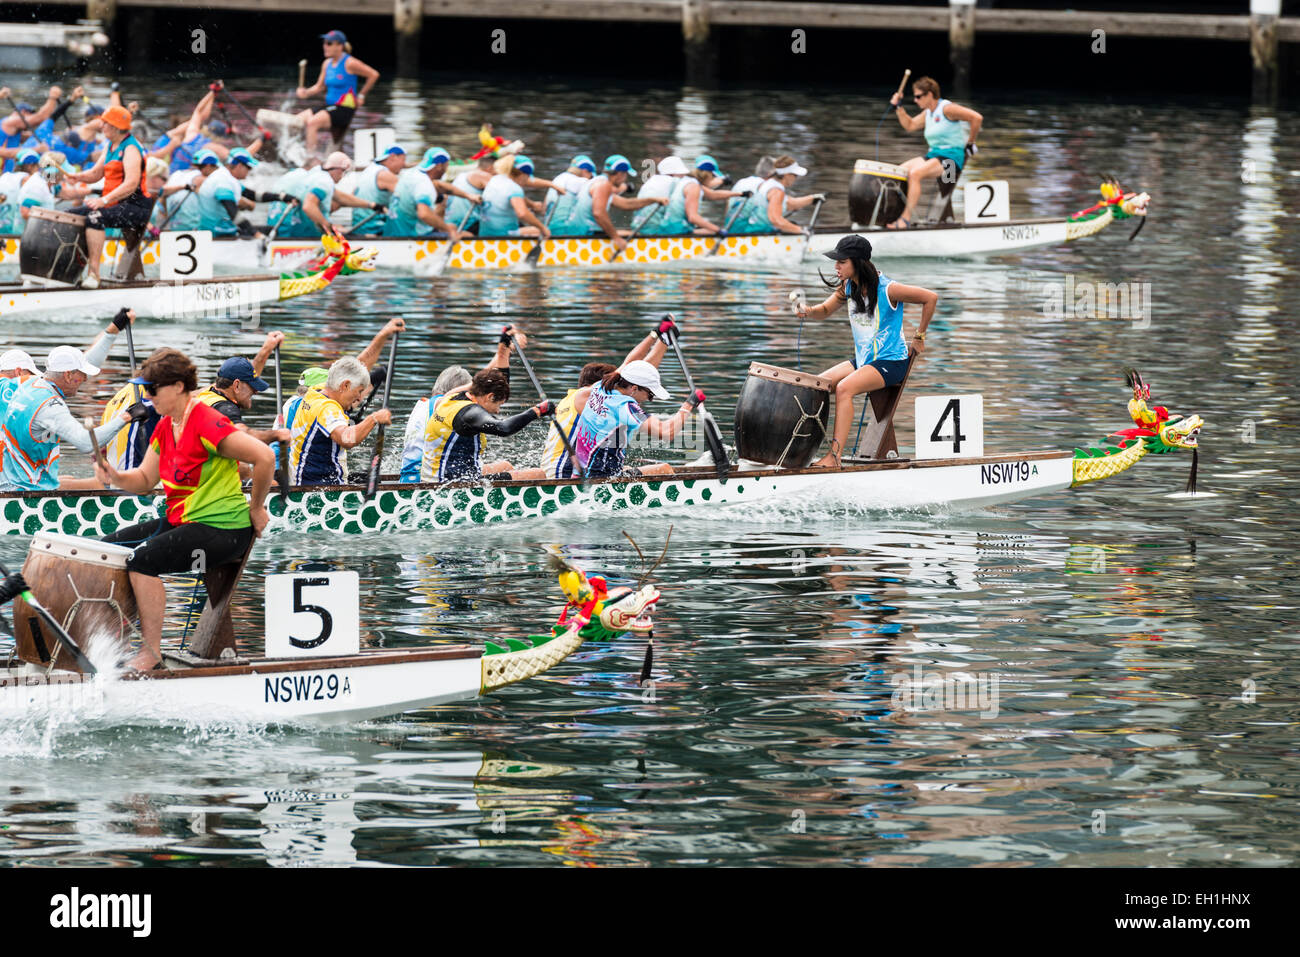 Women drummers set the pace during a dragon boat race, part of Chinese New Year 2015. Darling Harbour, Sydney, Australia - Stock Image